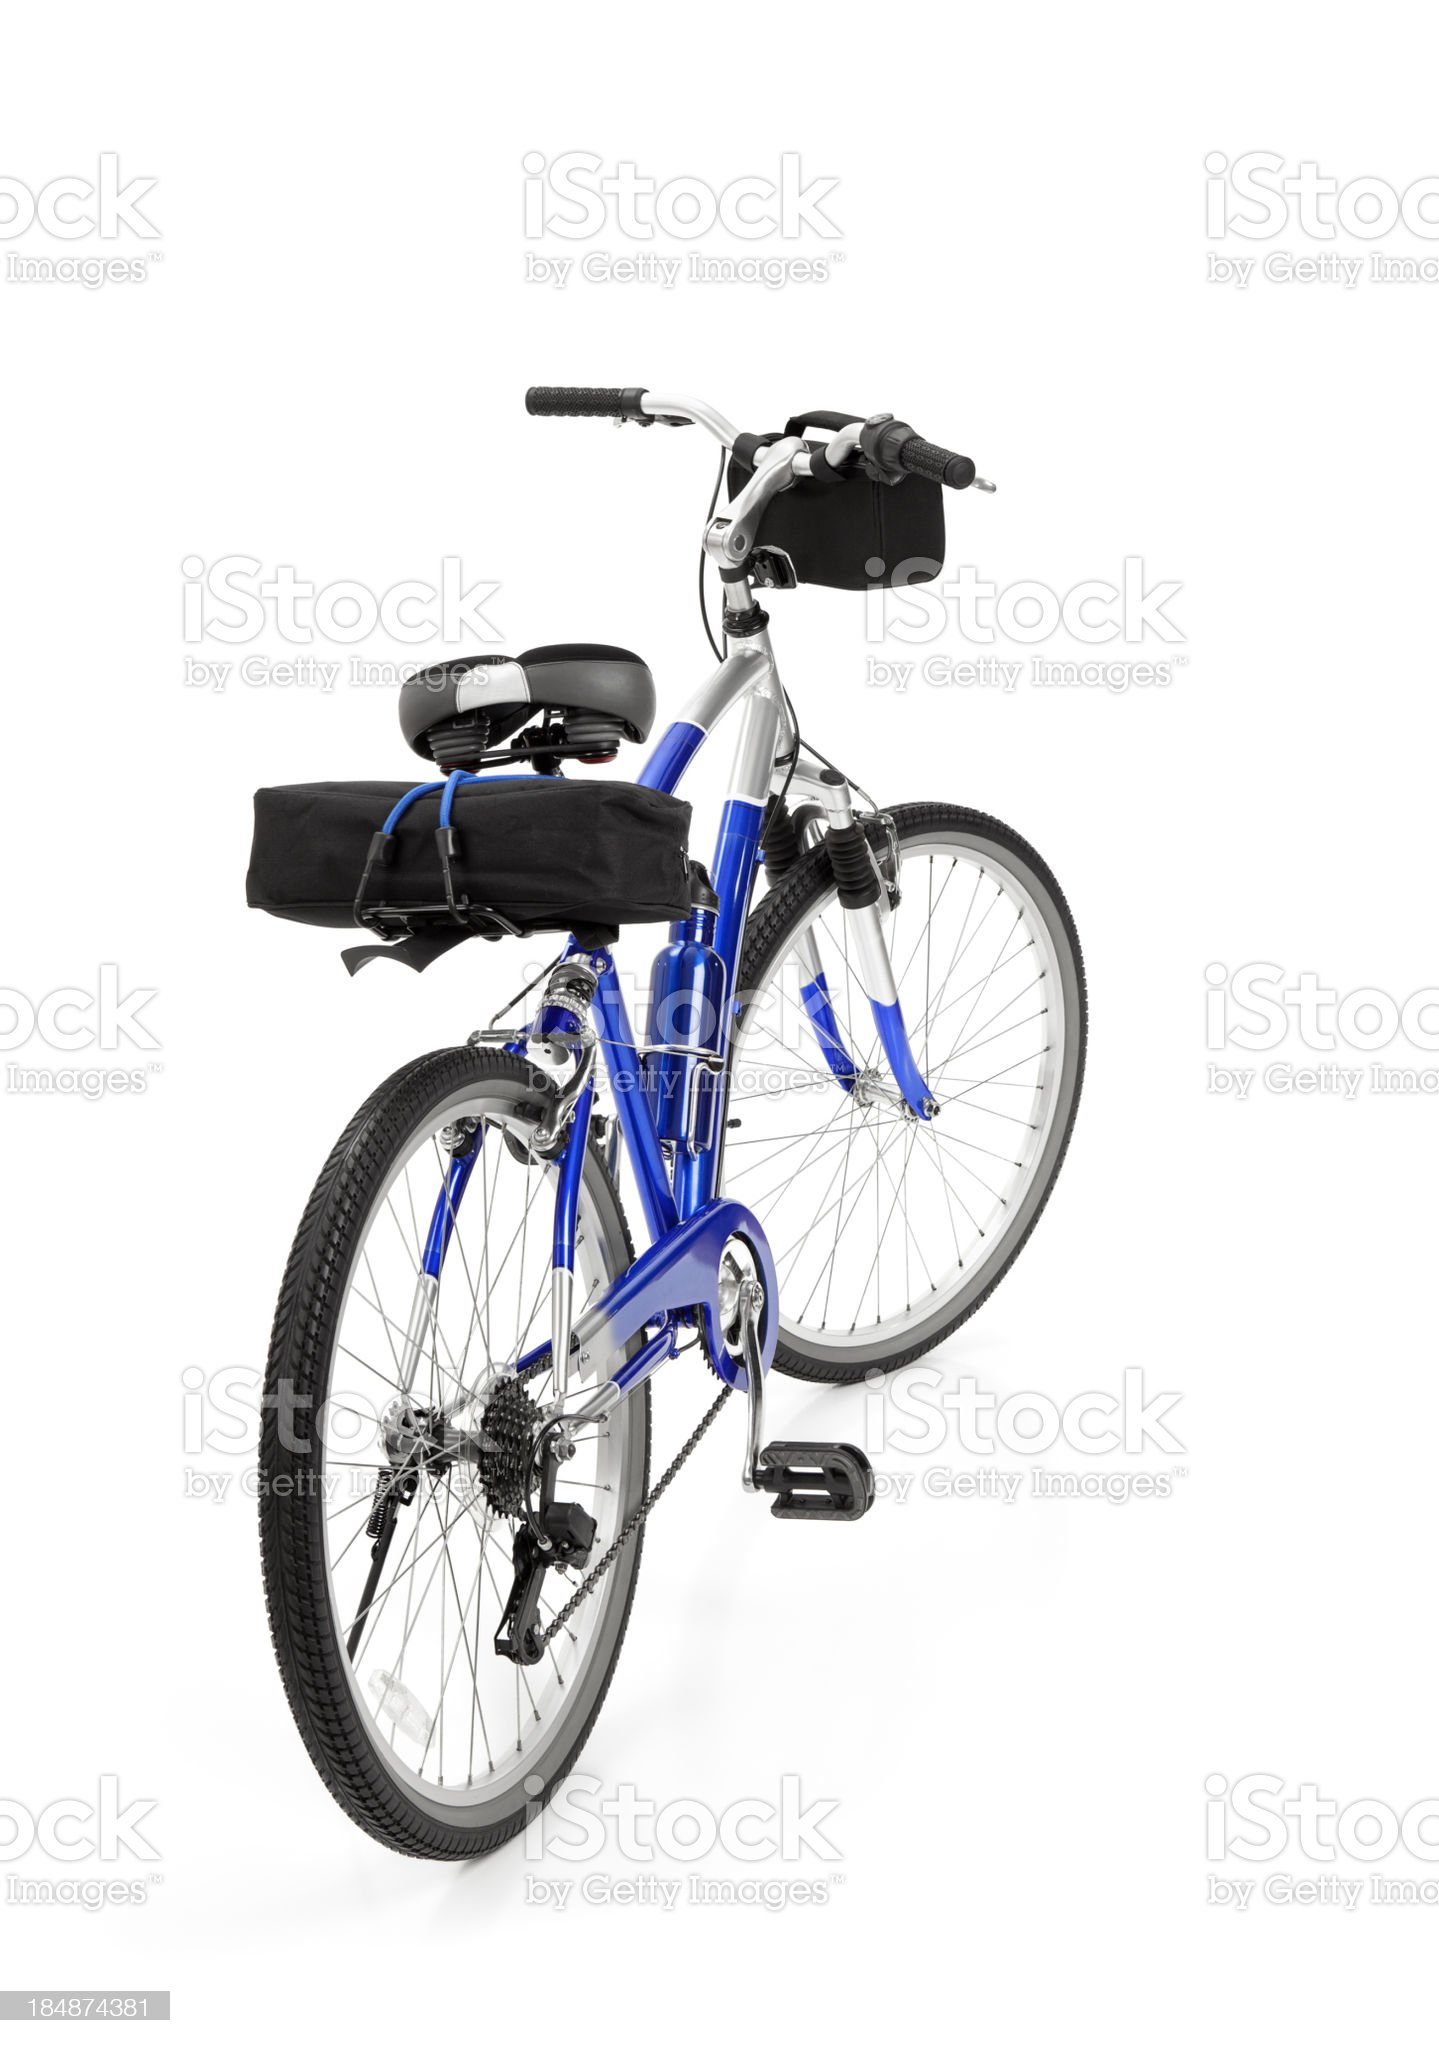 Bicycle Isolated royalty-free stock photo